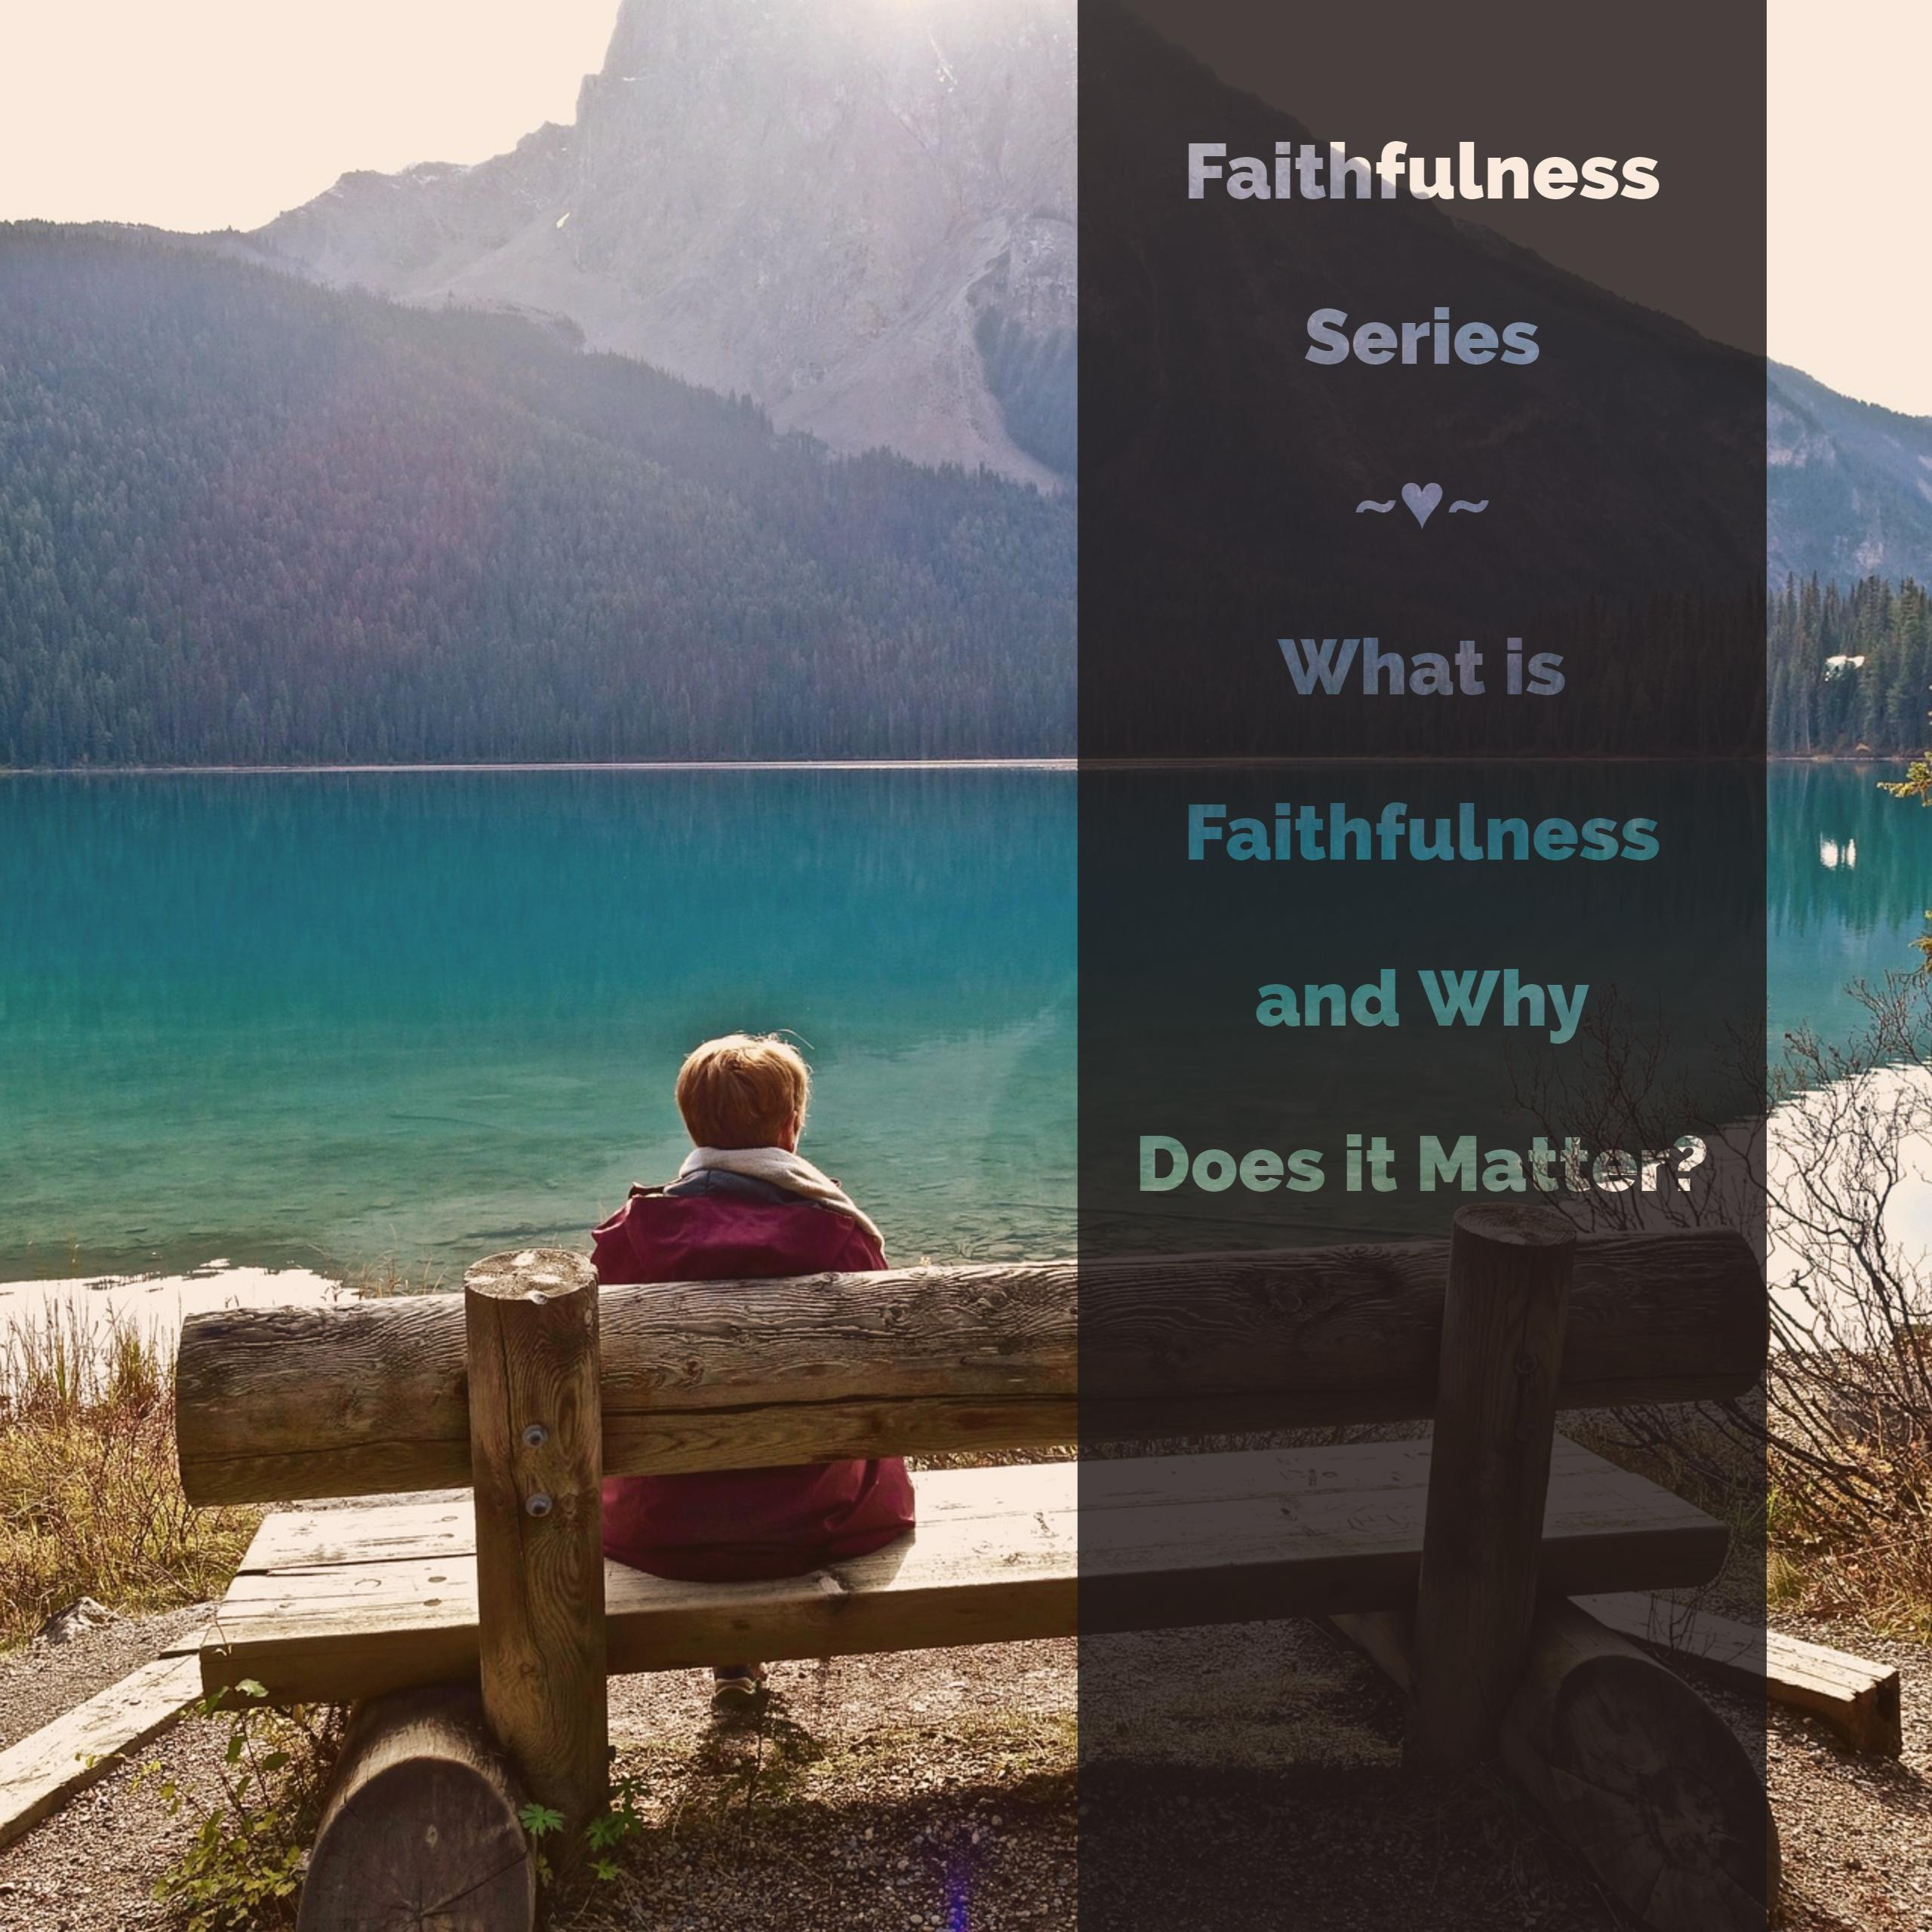 What is Faithfulness and Why Does it Matter?